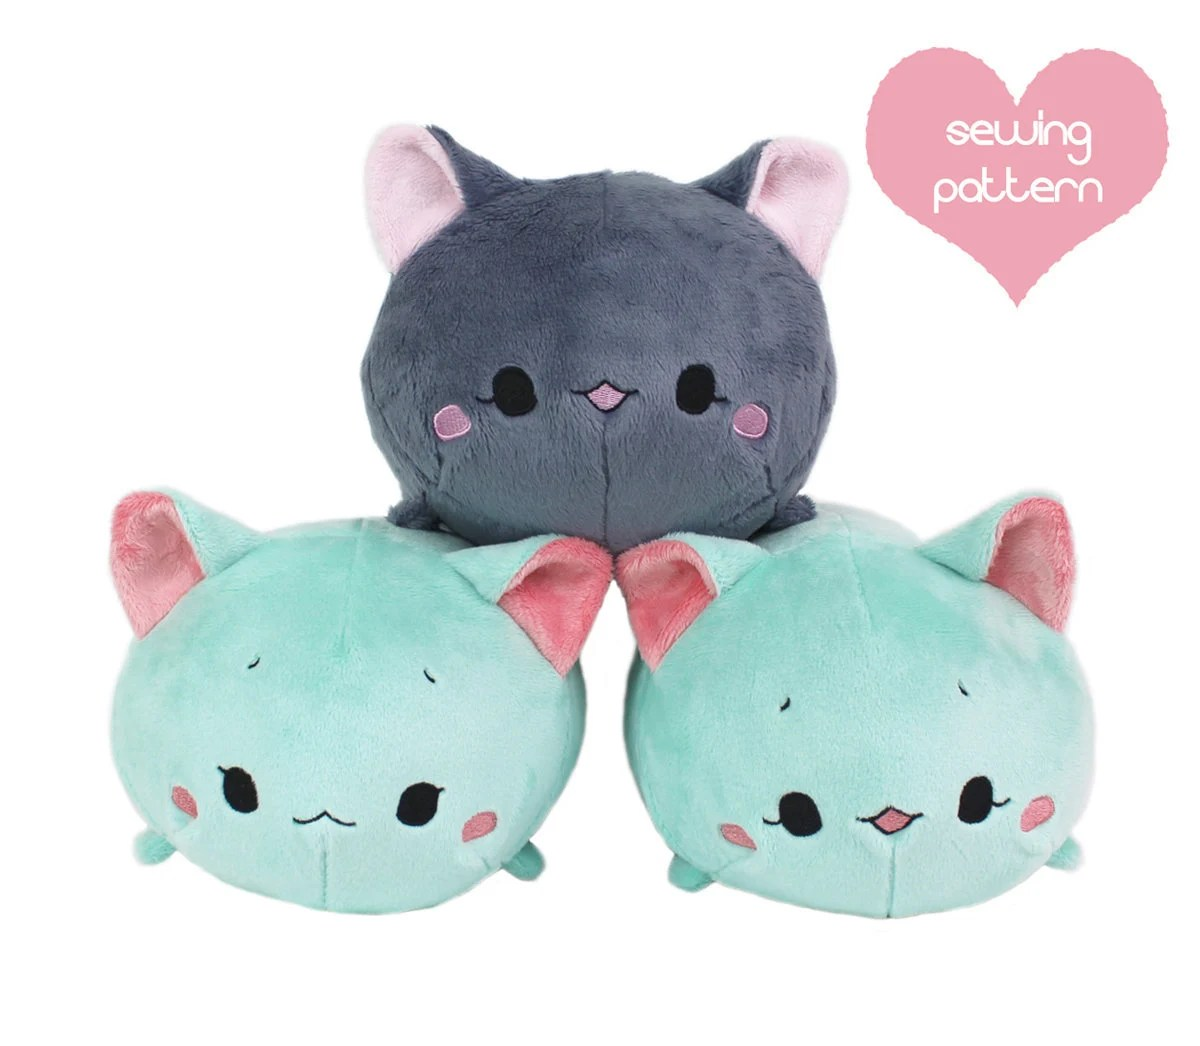 Cat Plush Toy Pdf Sewing Pattern Cat Roll Plush Stacking Loaf Plushie Easy Furry Cute Anime Kawaii Stuffed Animal Diy Softie Plush Toy Teacuplion